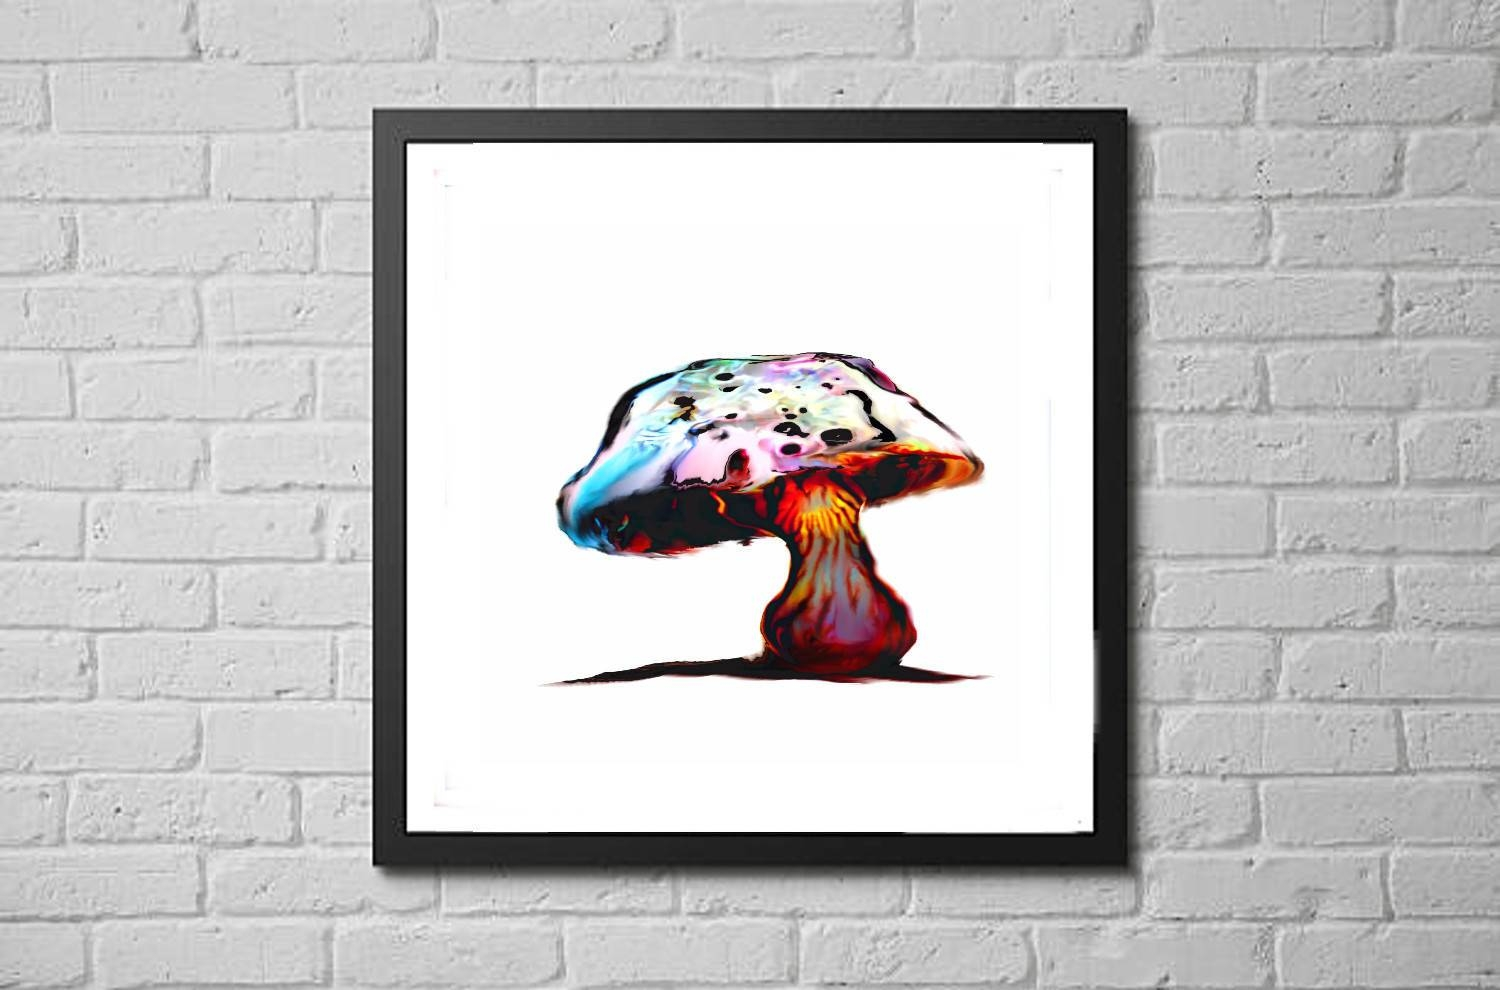 Mushroom Art Print / Nature Fungi Botanical Decor / Trippy Intended For Most Recently Released Mushroom Wall Art (Gallery 12 of 20)